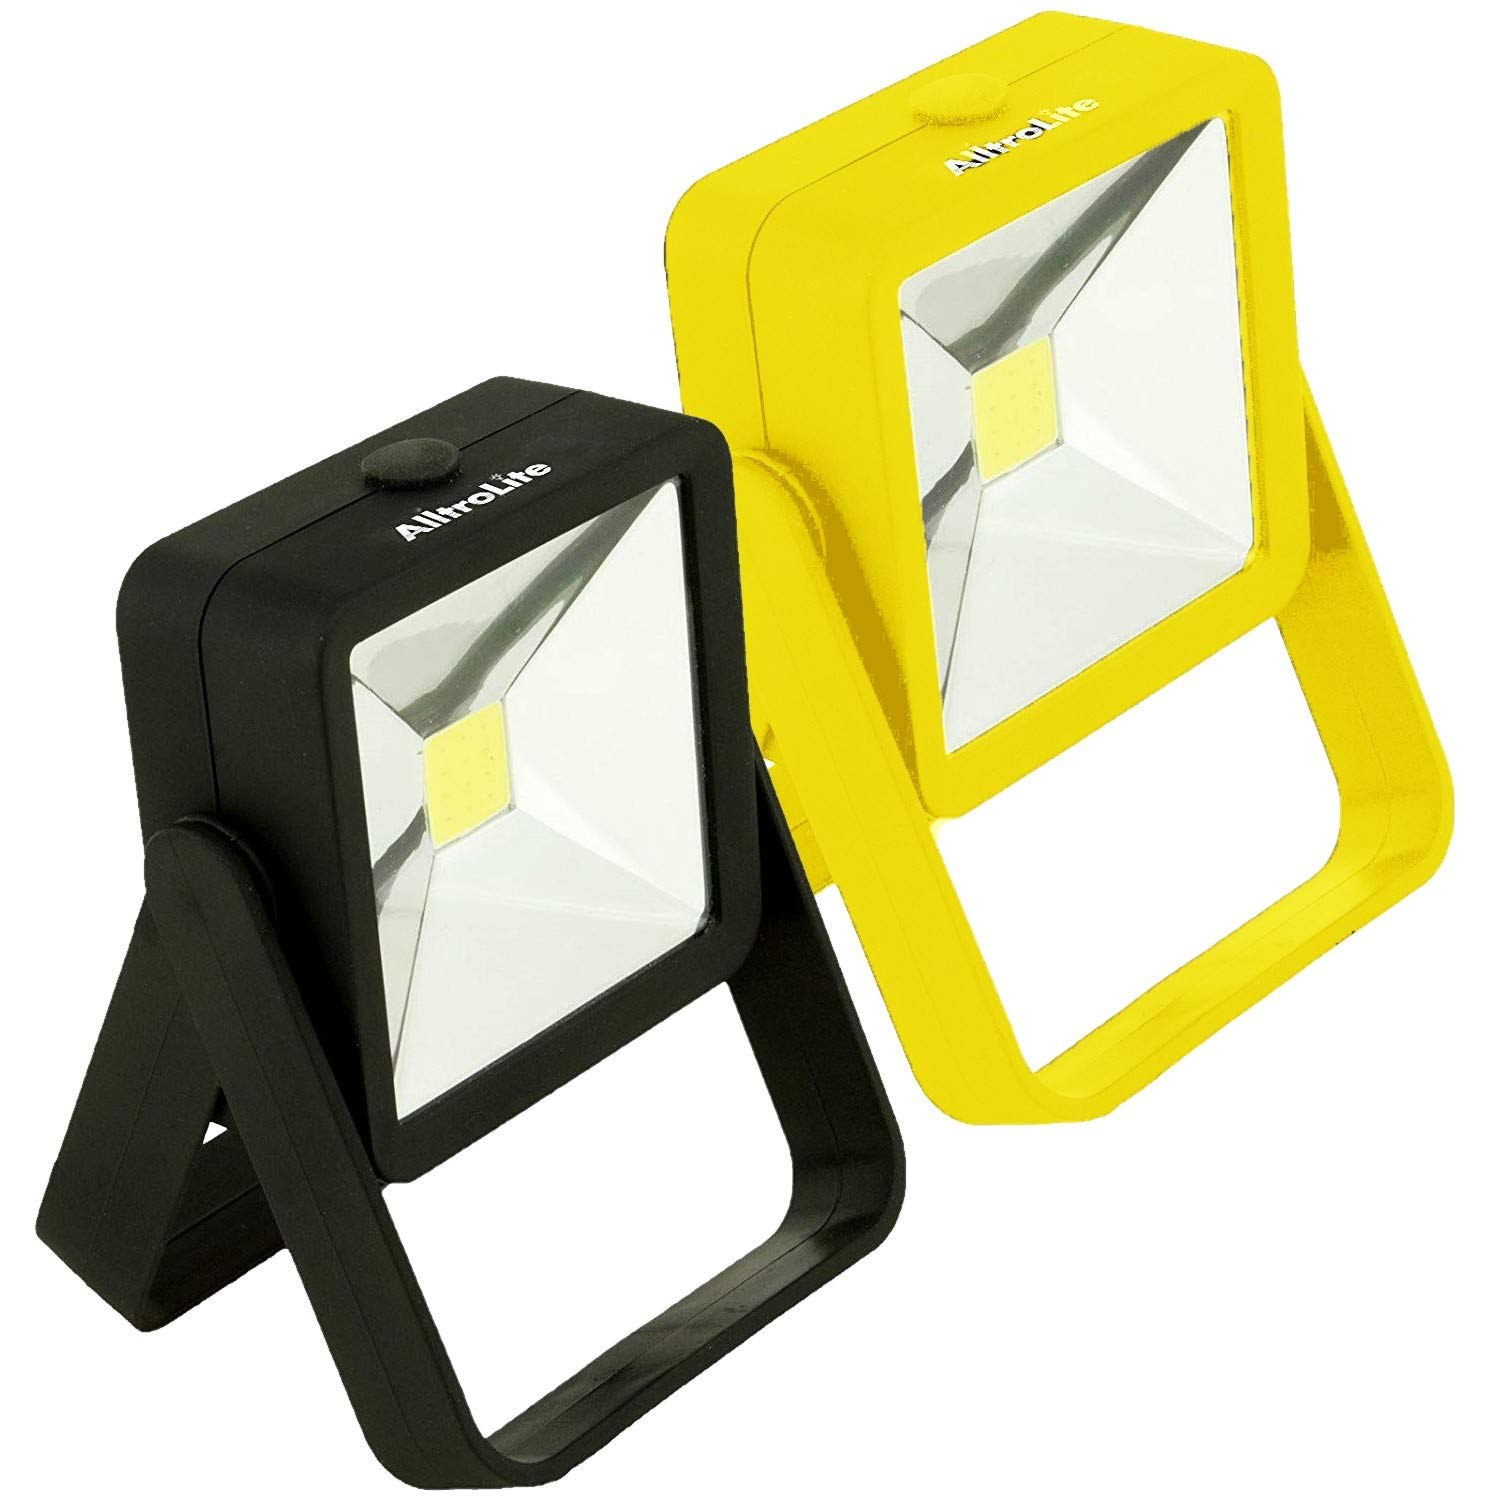 AlltroLite STANCE Portable LED Work Light}